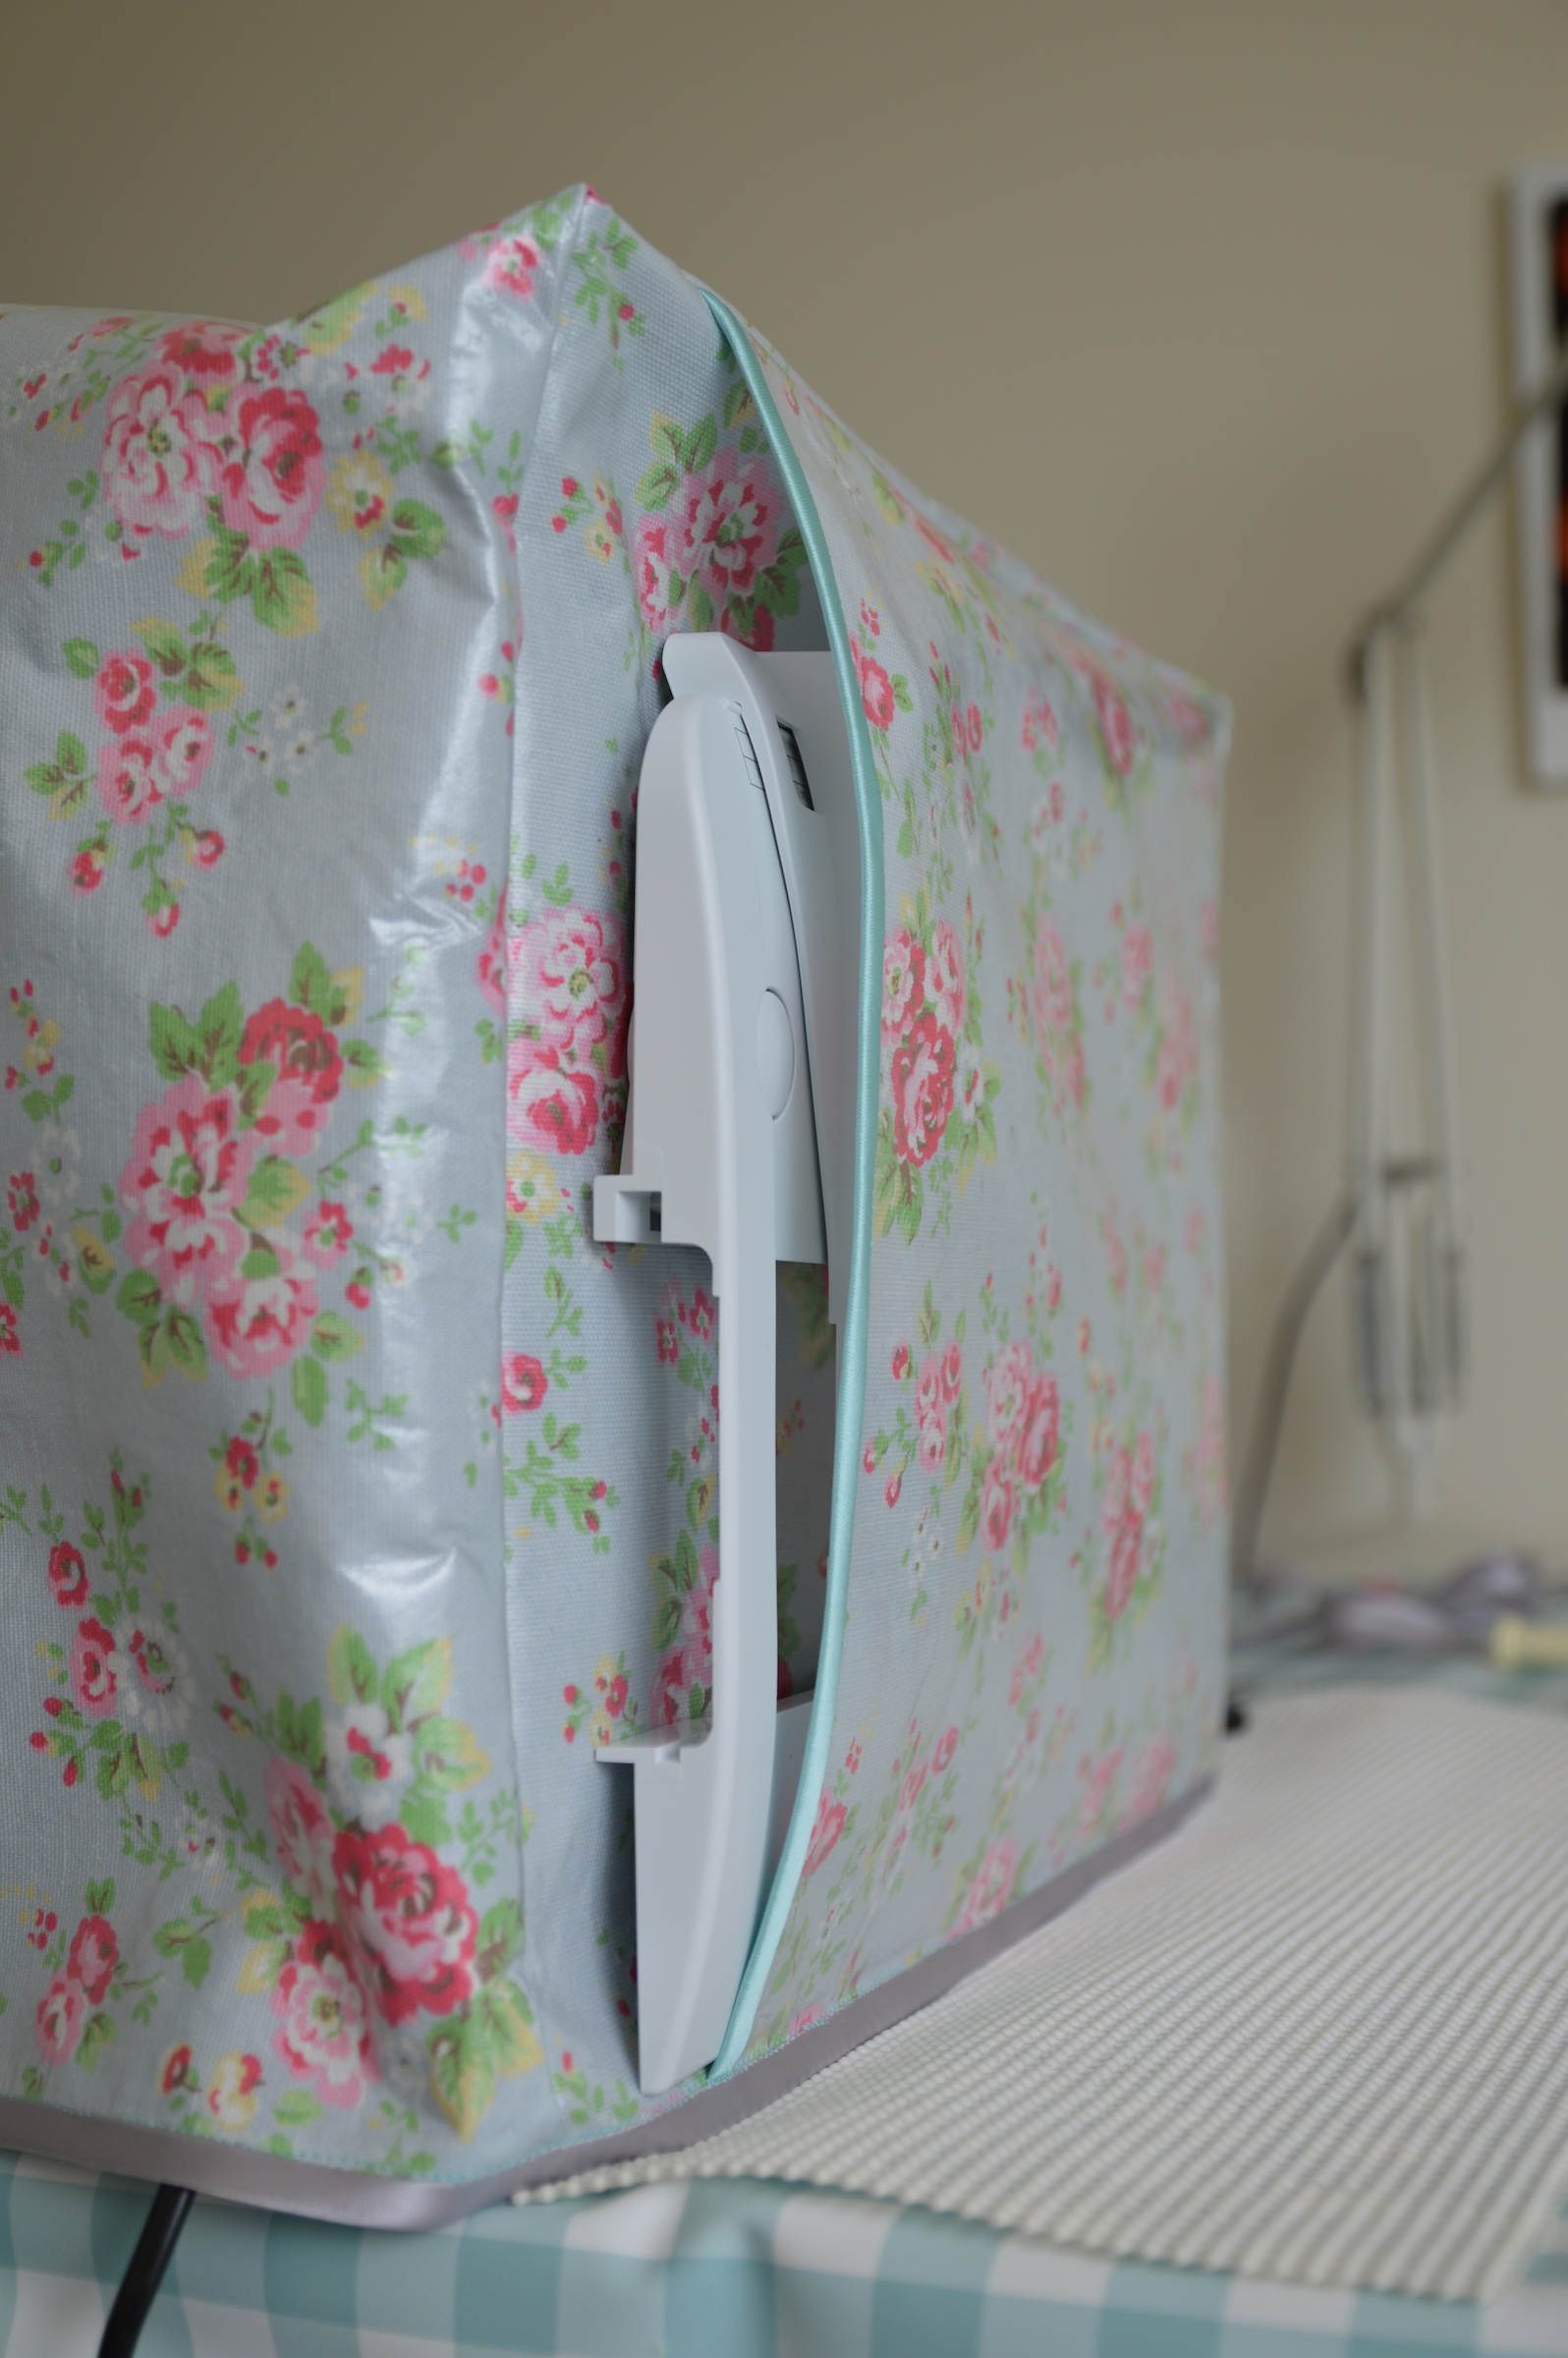 http://sosewlovely.com/2013/07/04/diy-laminate-sewing-machine-cover/